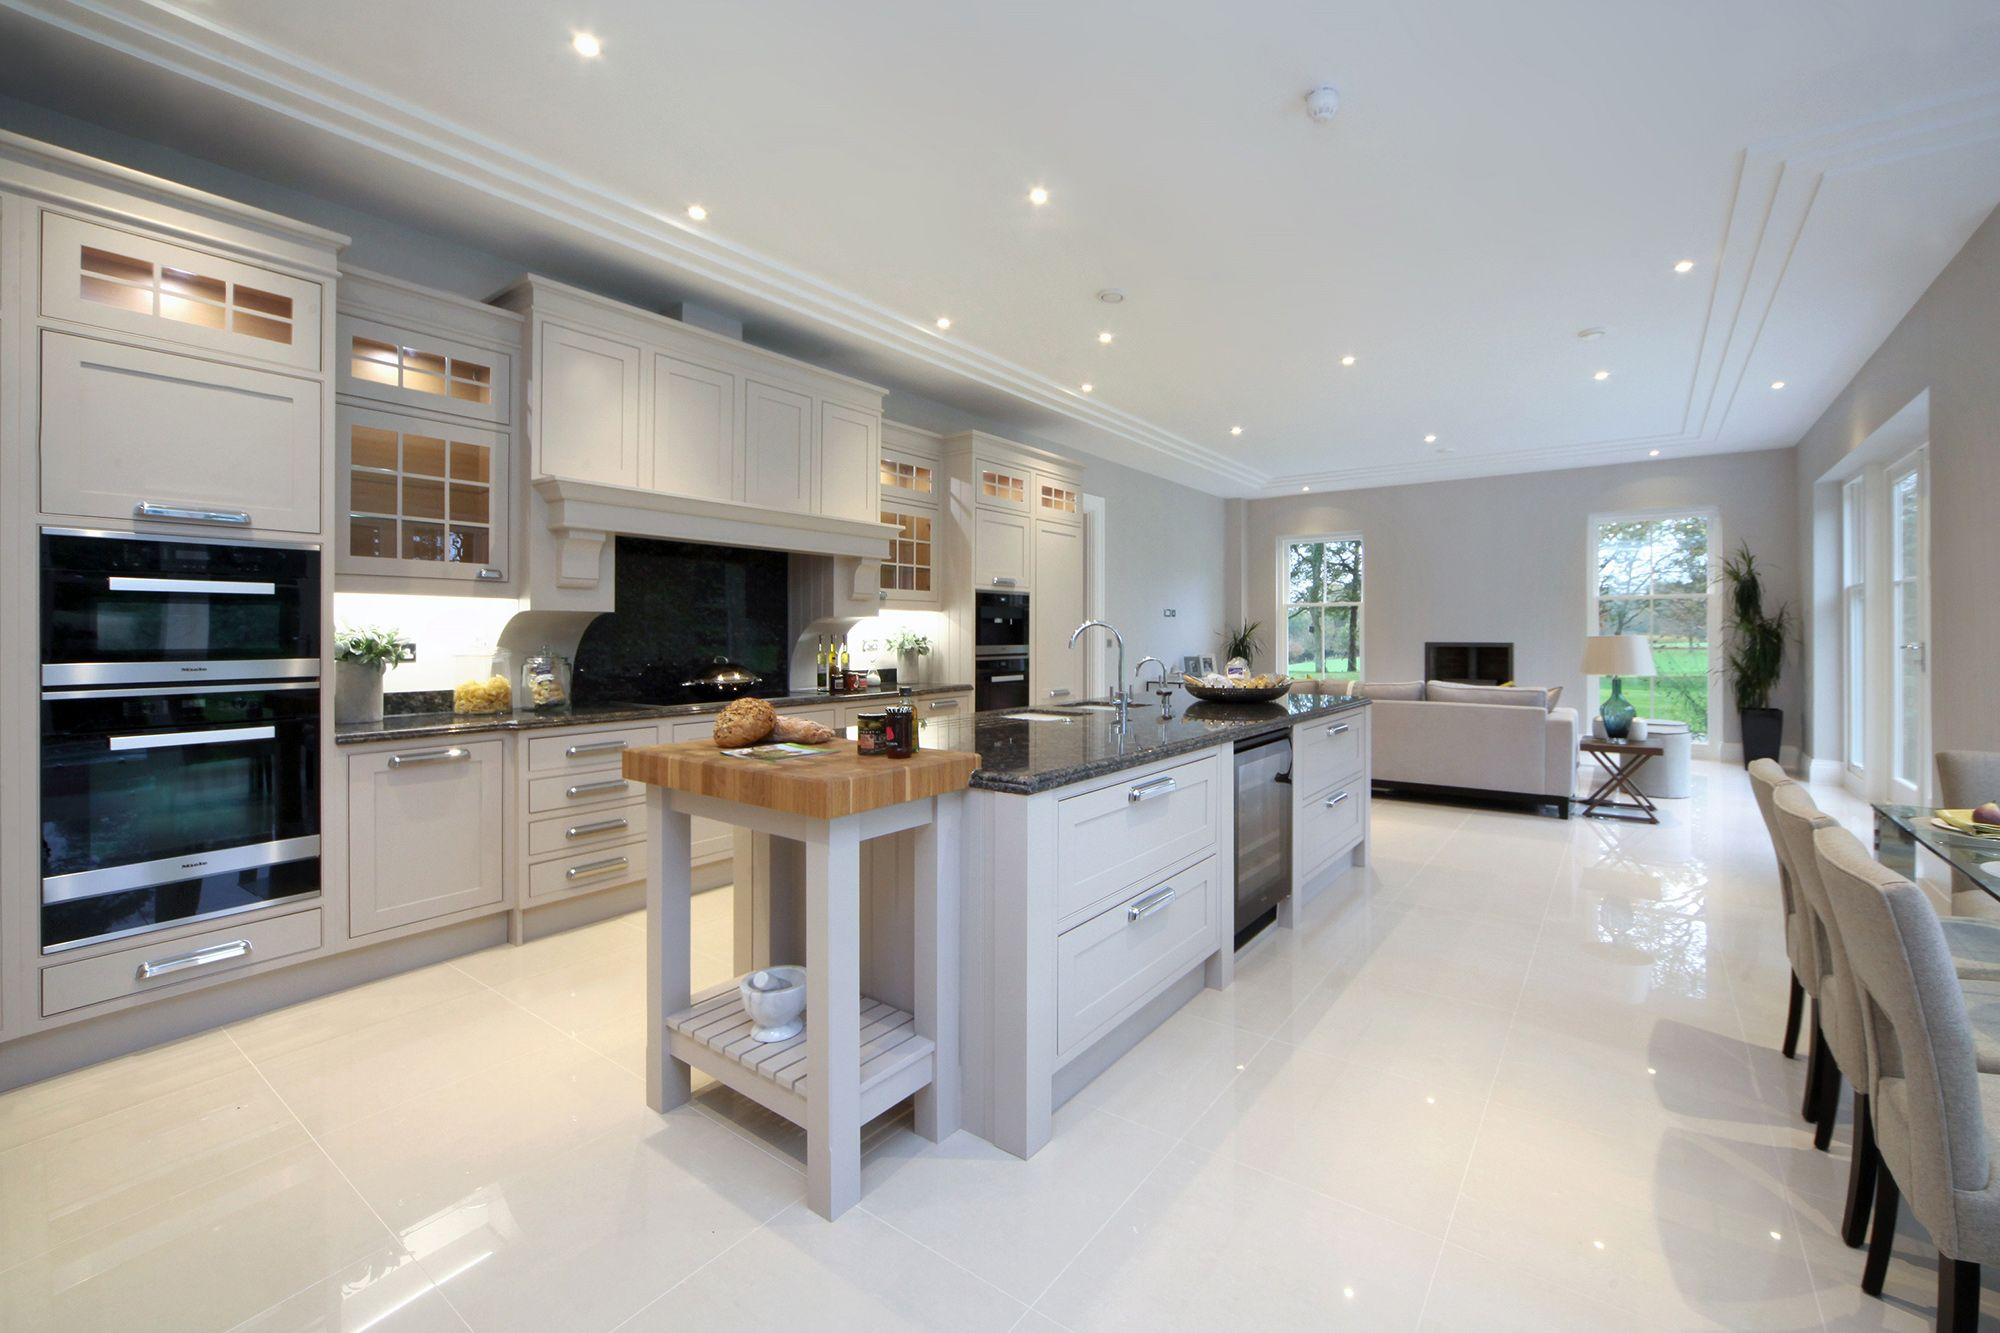 Burford place open plan kitchen with breakfast bar island - Designs for kitchen diners open plan ...